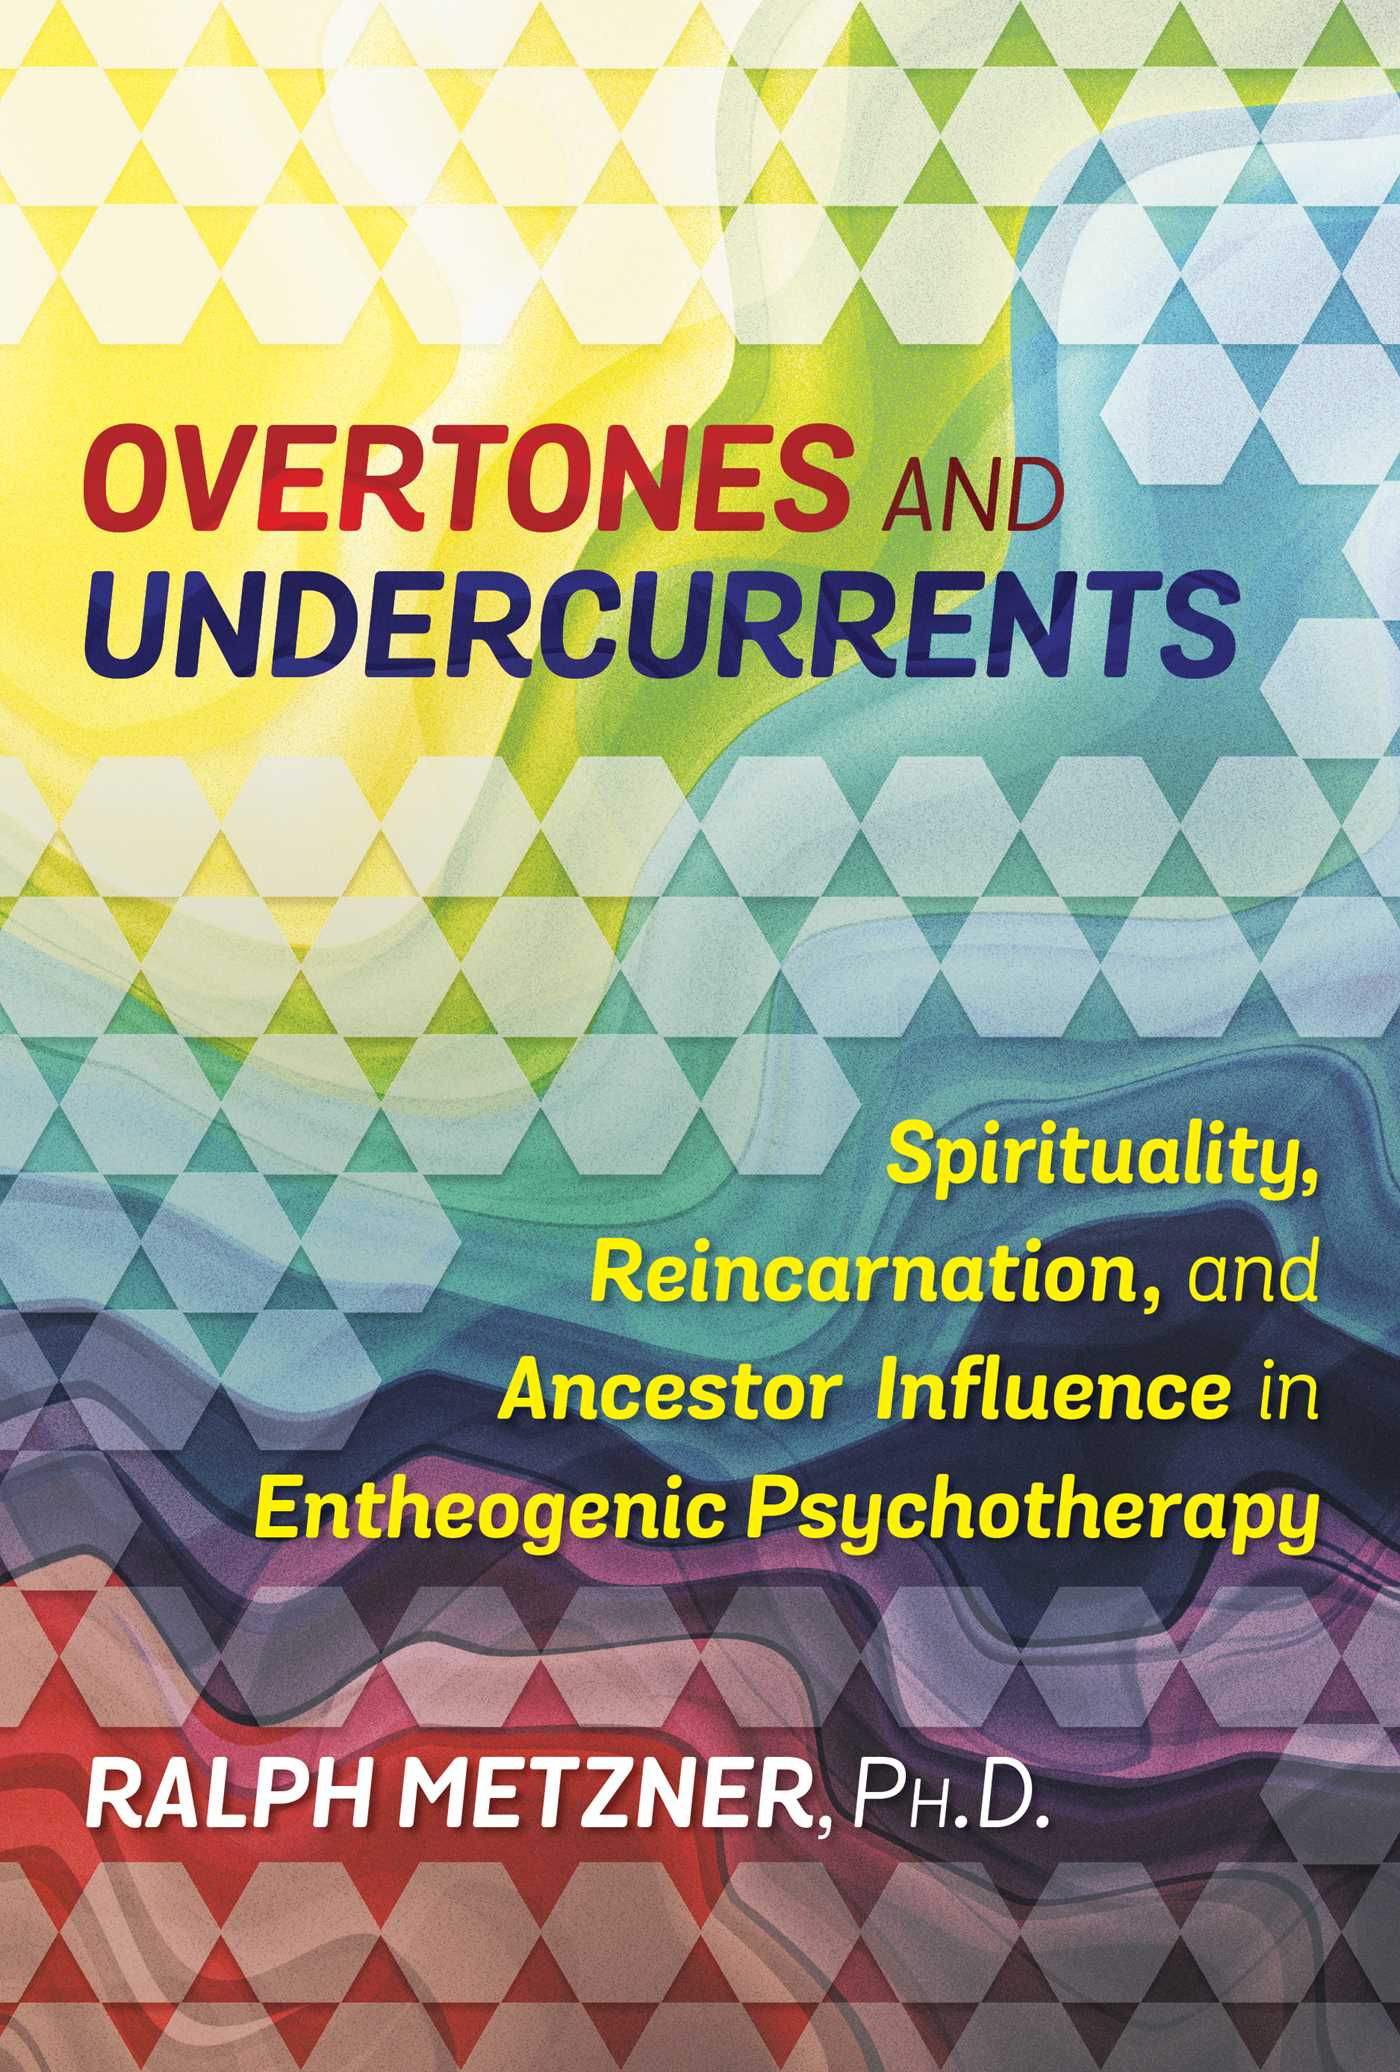 Overtones and undercurrents 9781620556894 hr